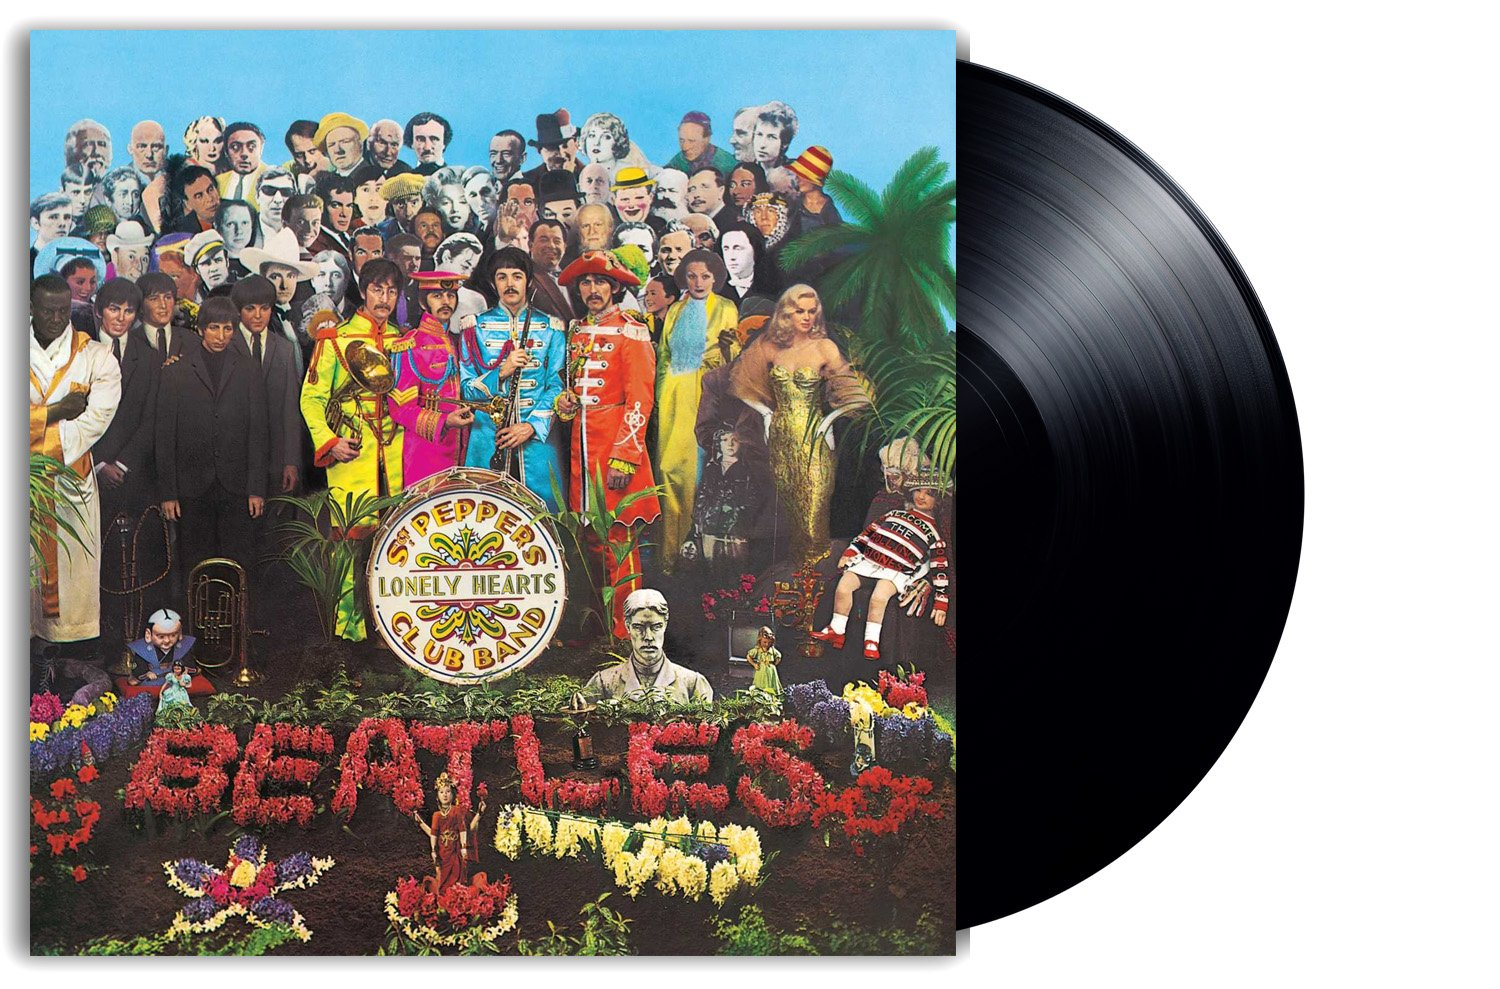 Sgt. Pepper's Lonely Hearts Club Band by EMI